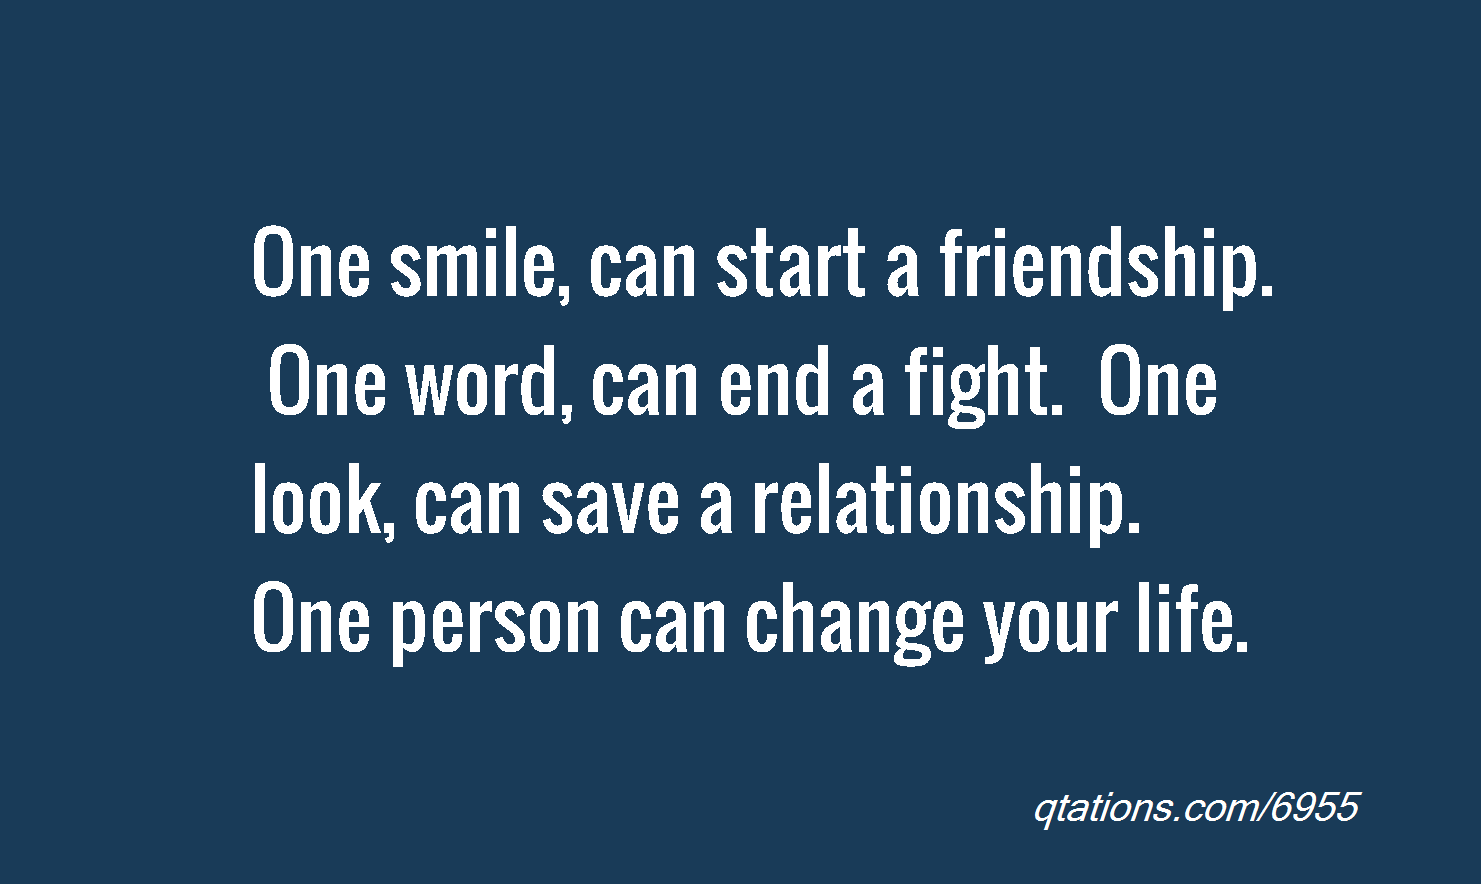 On And Off Relationship Quotes Quotesgram: Life Changing Relationship Quotes. QuotesGram